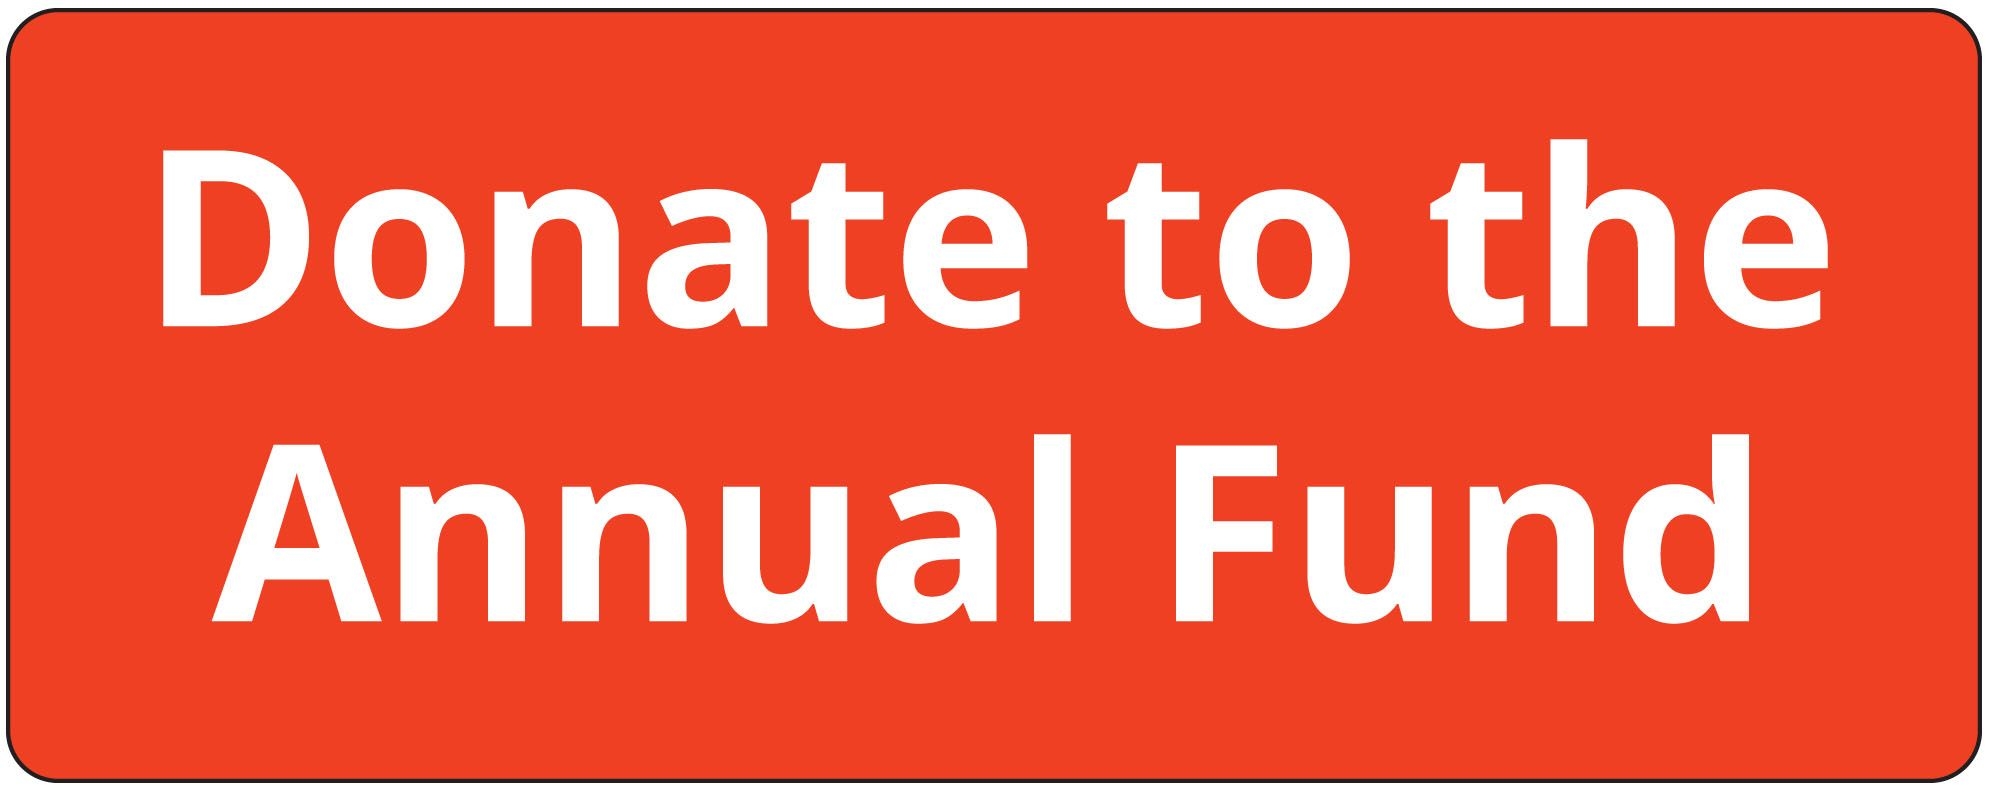 Donate to the Annual Fund